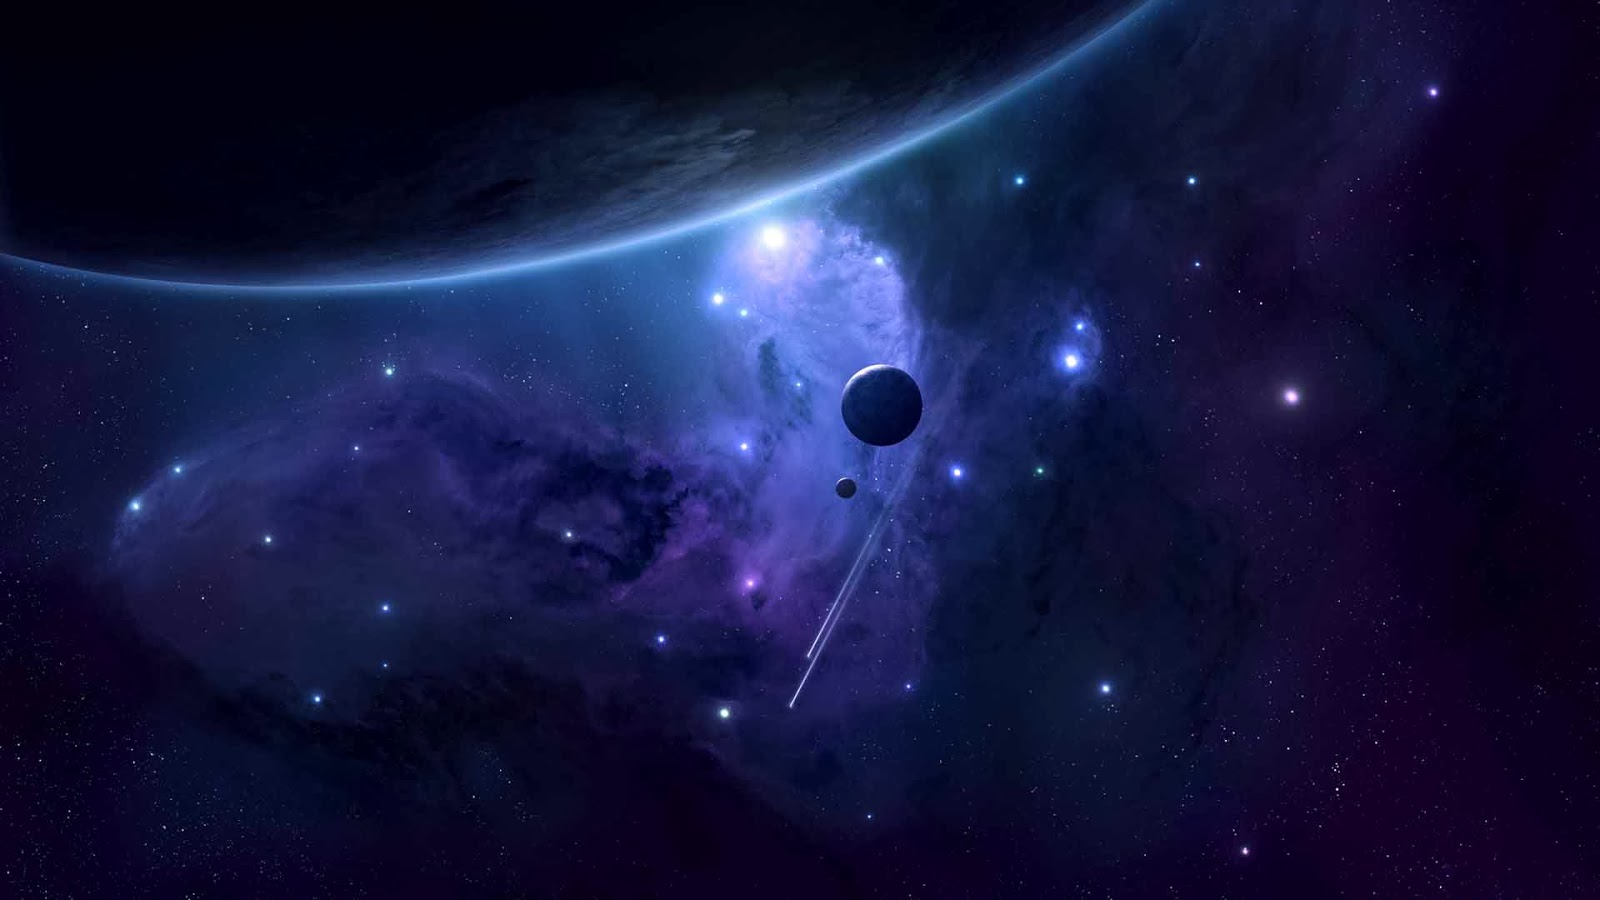 hd wallpapers blog space wallpapers 1920x1080